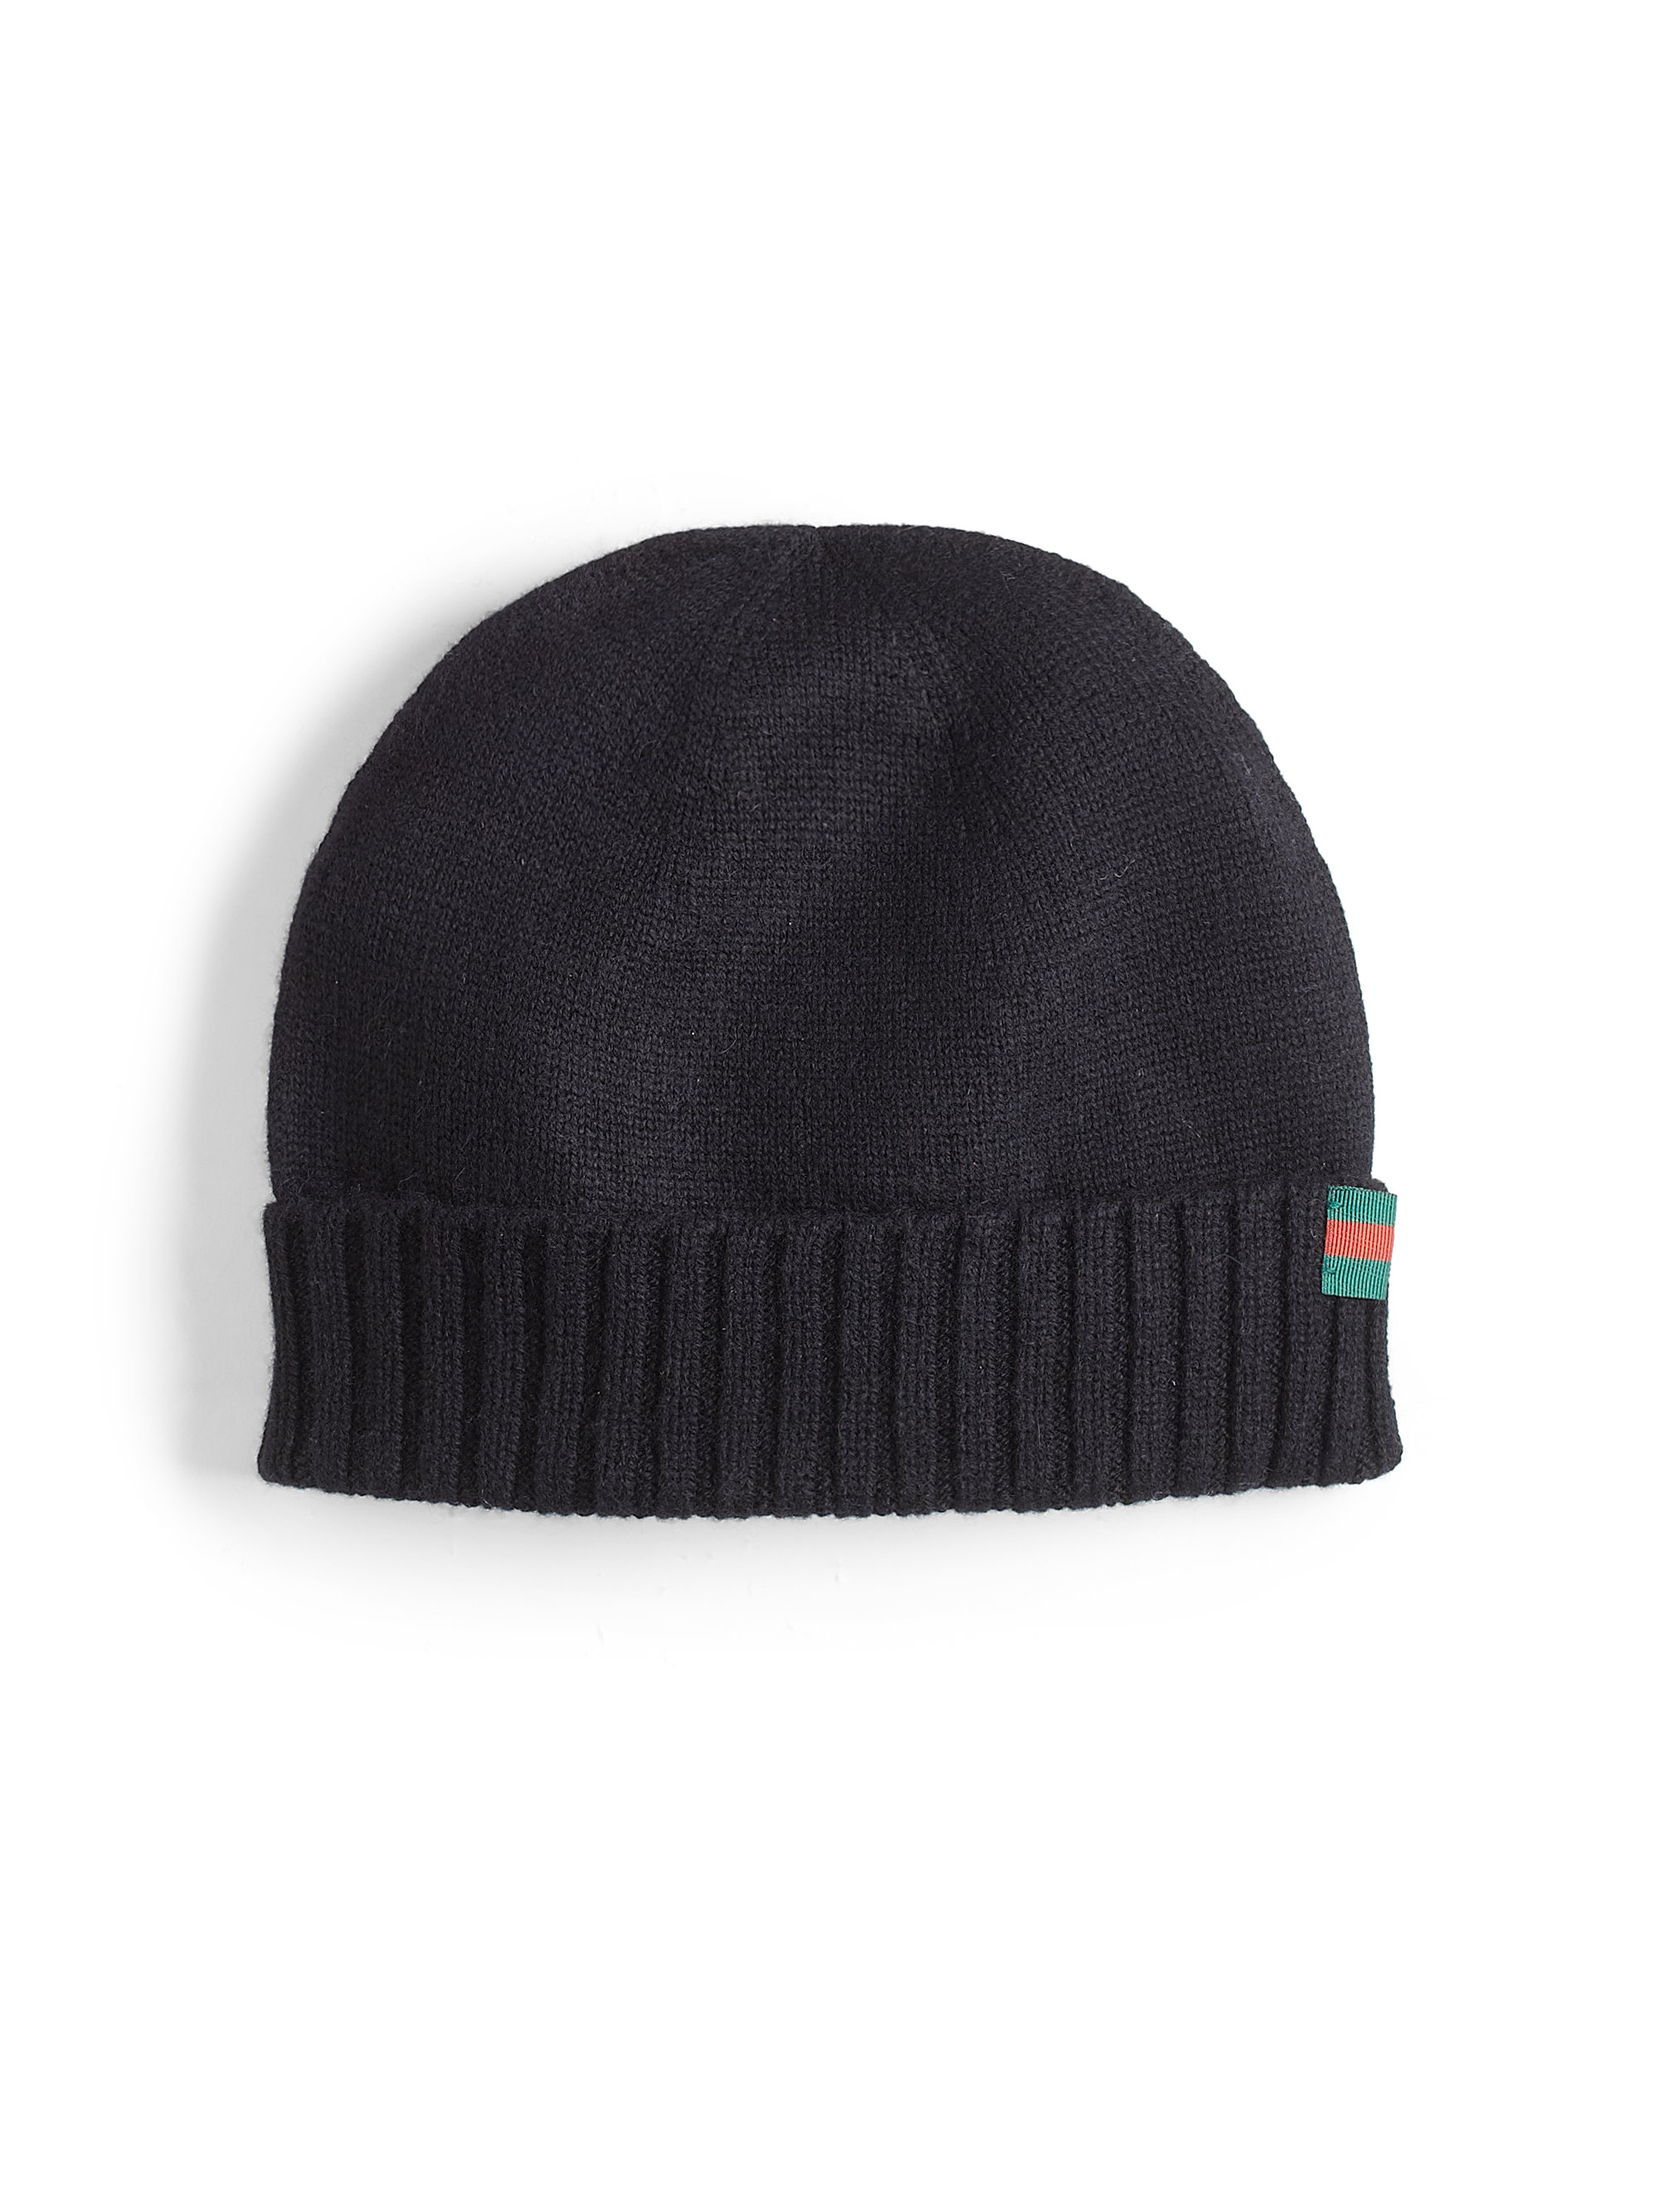 bb6590a4a51 Lyst - Gucci Knit Hat in Black for Men